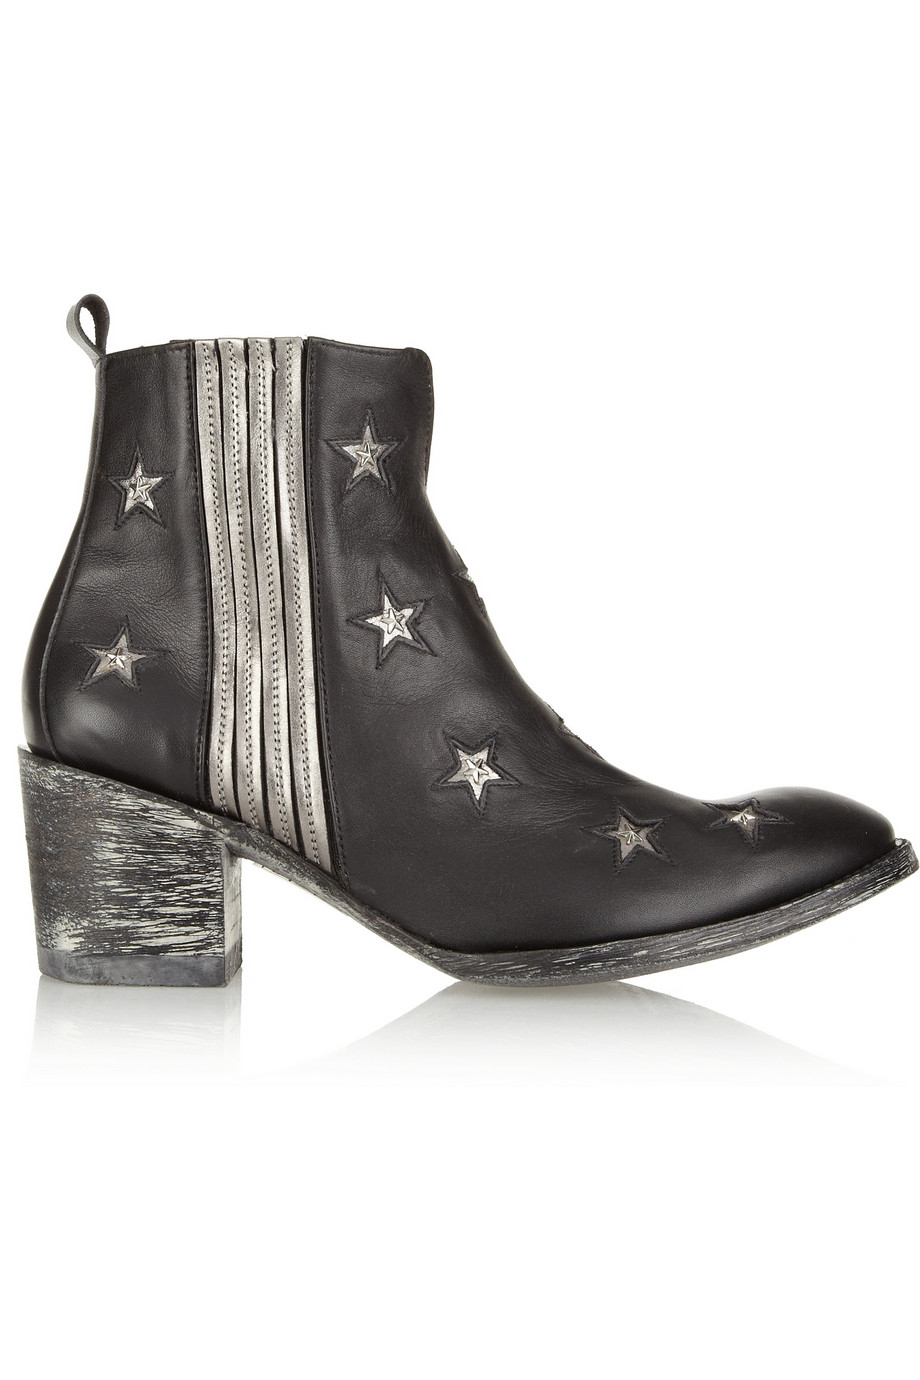 Lyst Mexicana Chiqui Star Studded Leather Ankle Boots In